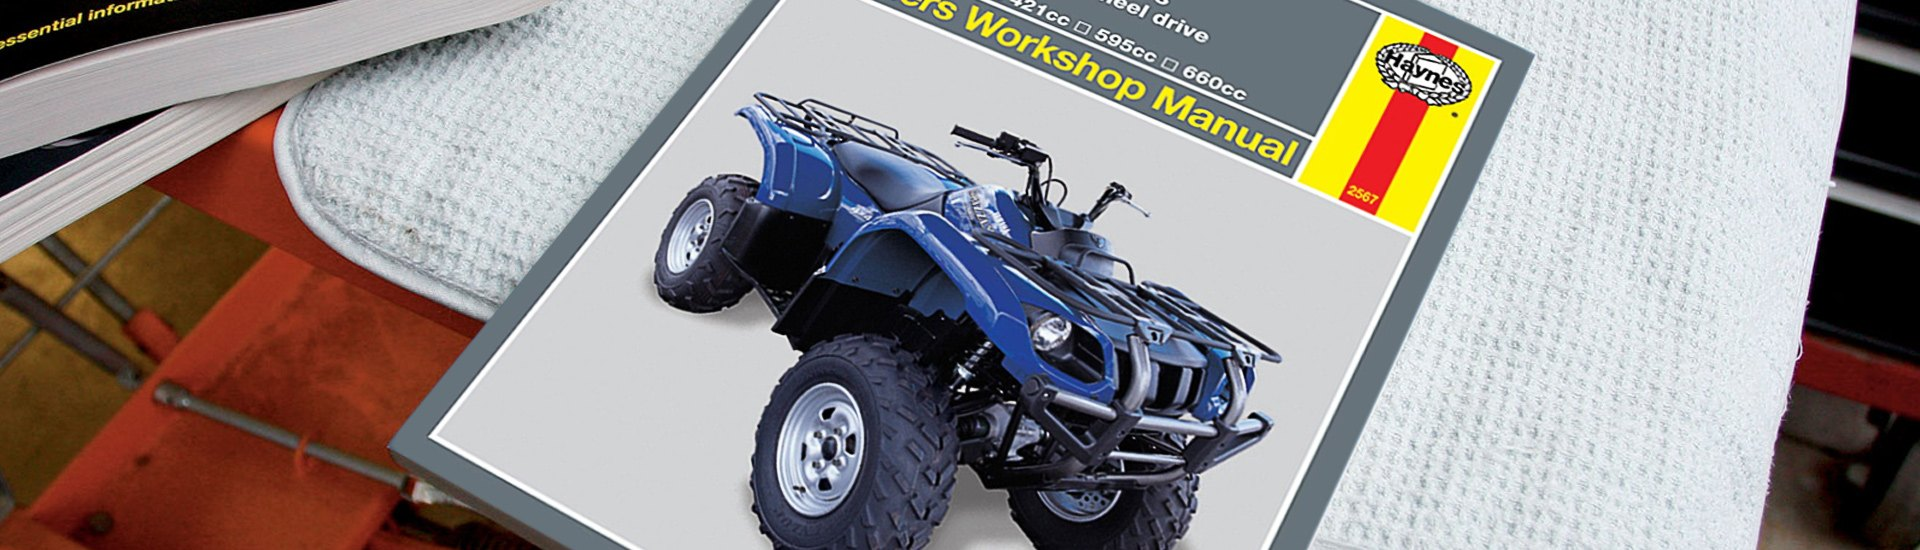 Powersports Repair Manuals | ATV, Snowmobile, UTV, PWC ... on golf cart brands, golf cart gas motors, golf cart chassis, club car golf cart manual,